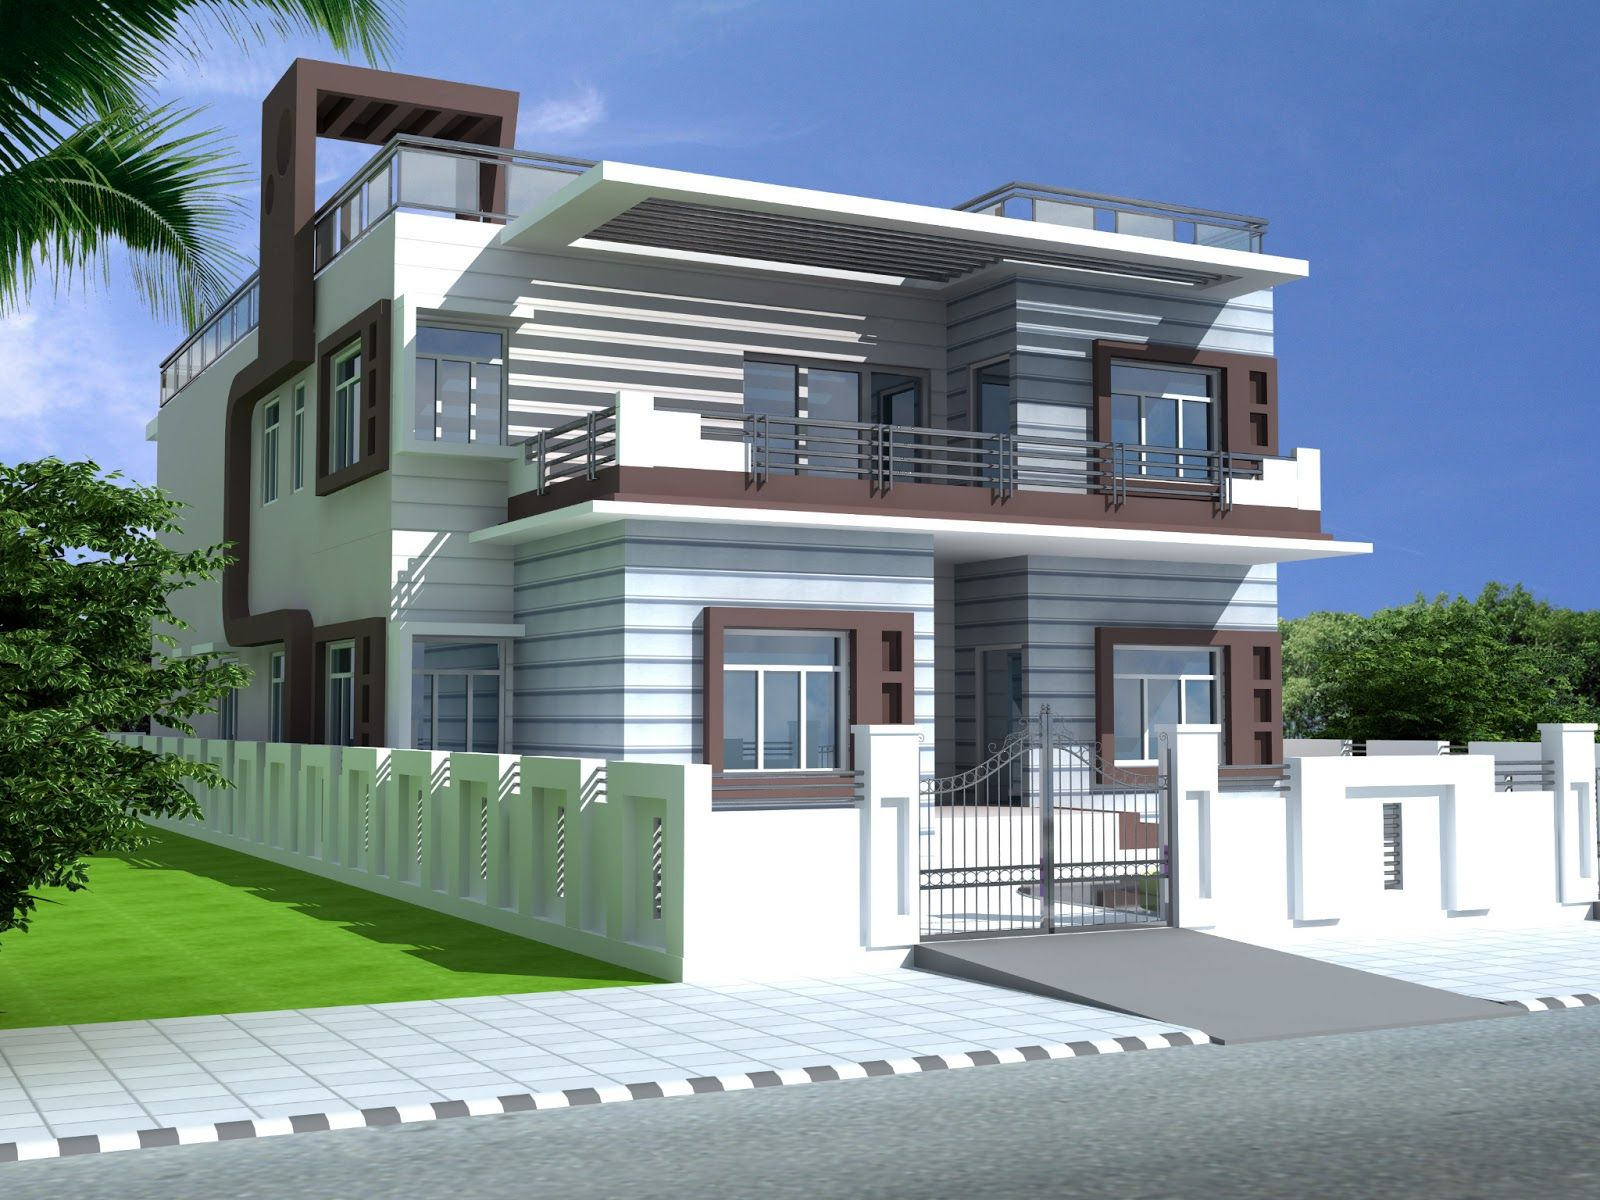 6 bedrooms duplex house design in 390m2 13m x 30m for Modern duplex house designs